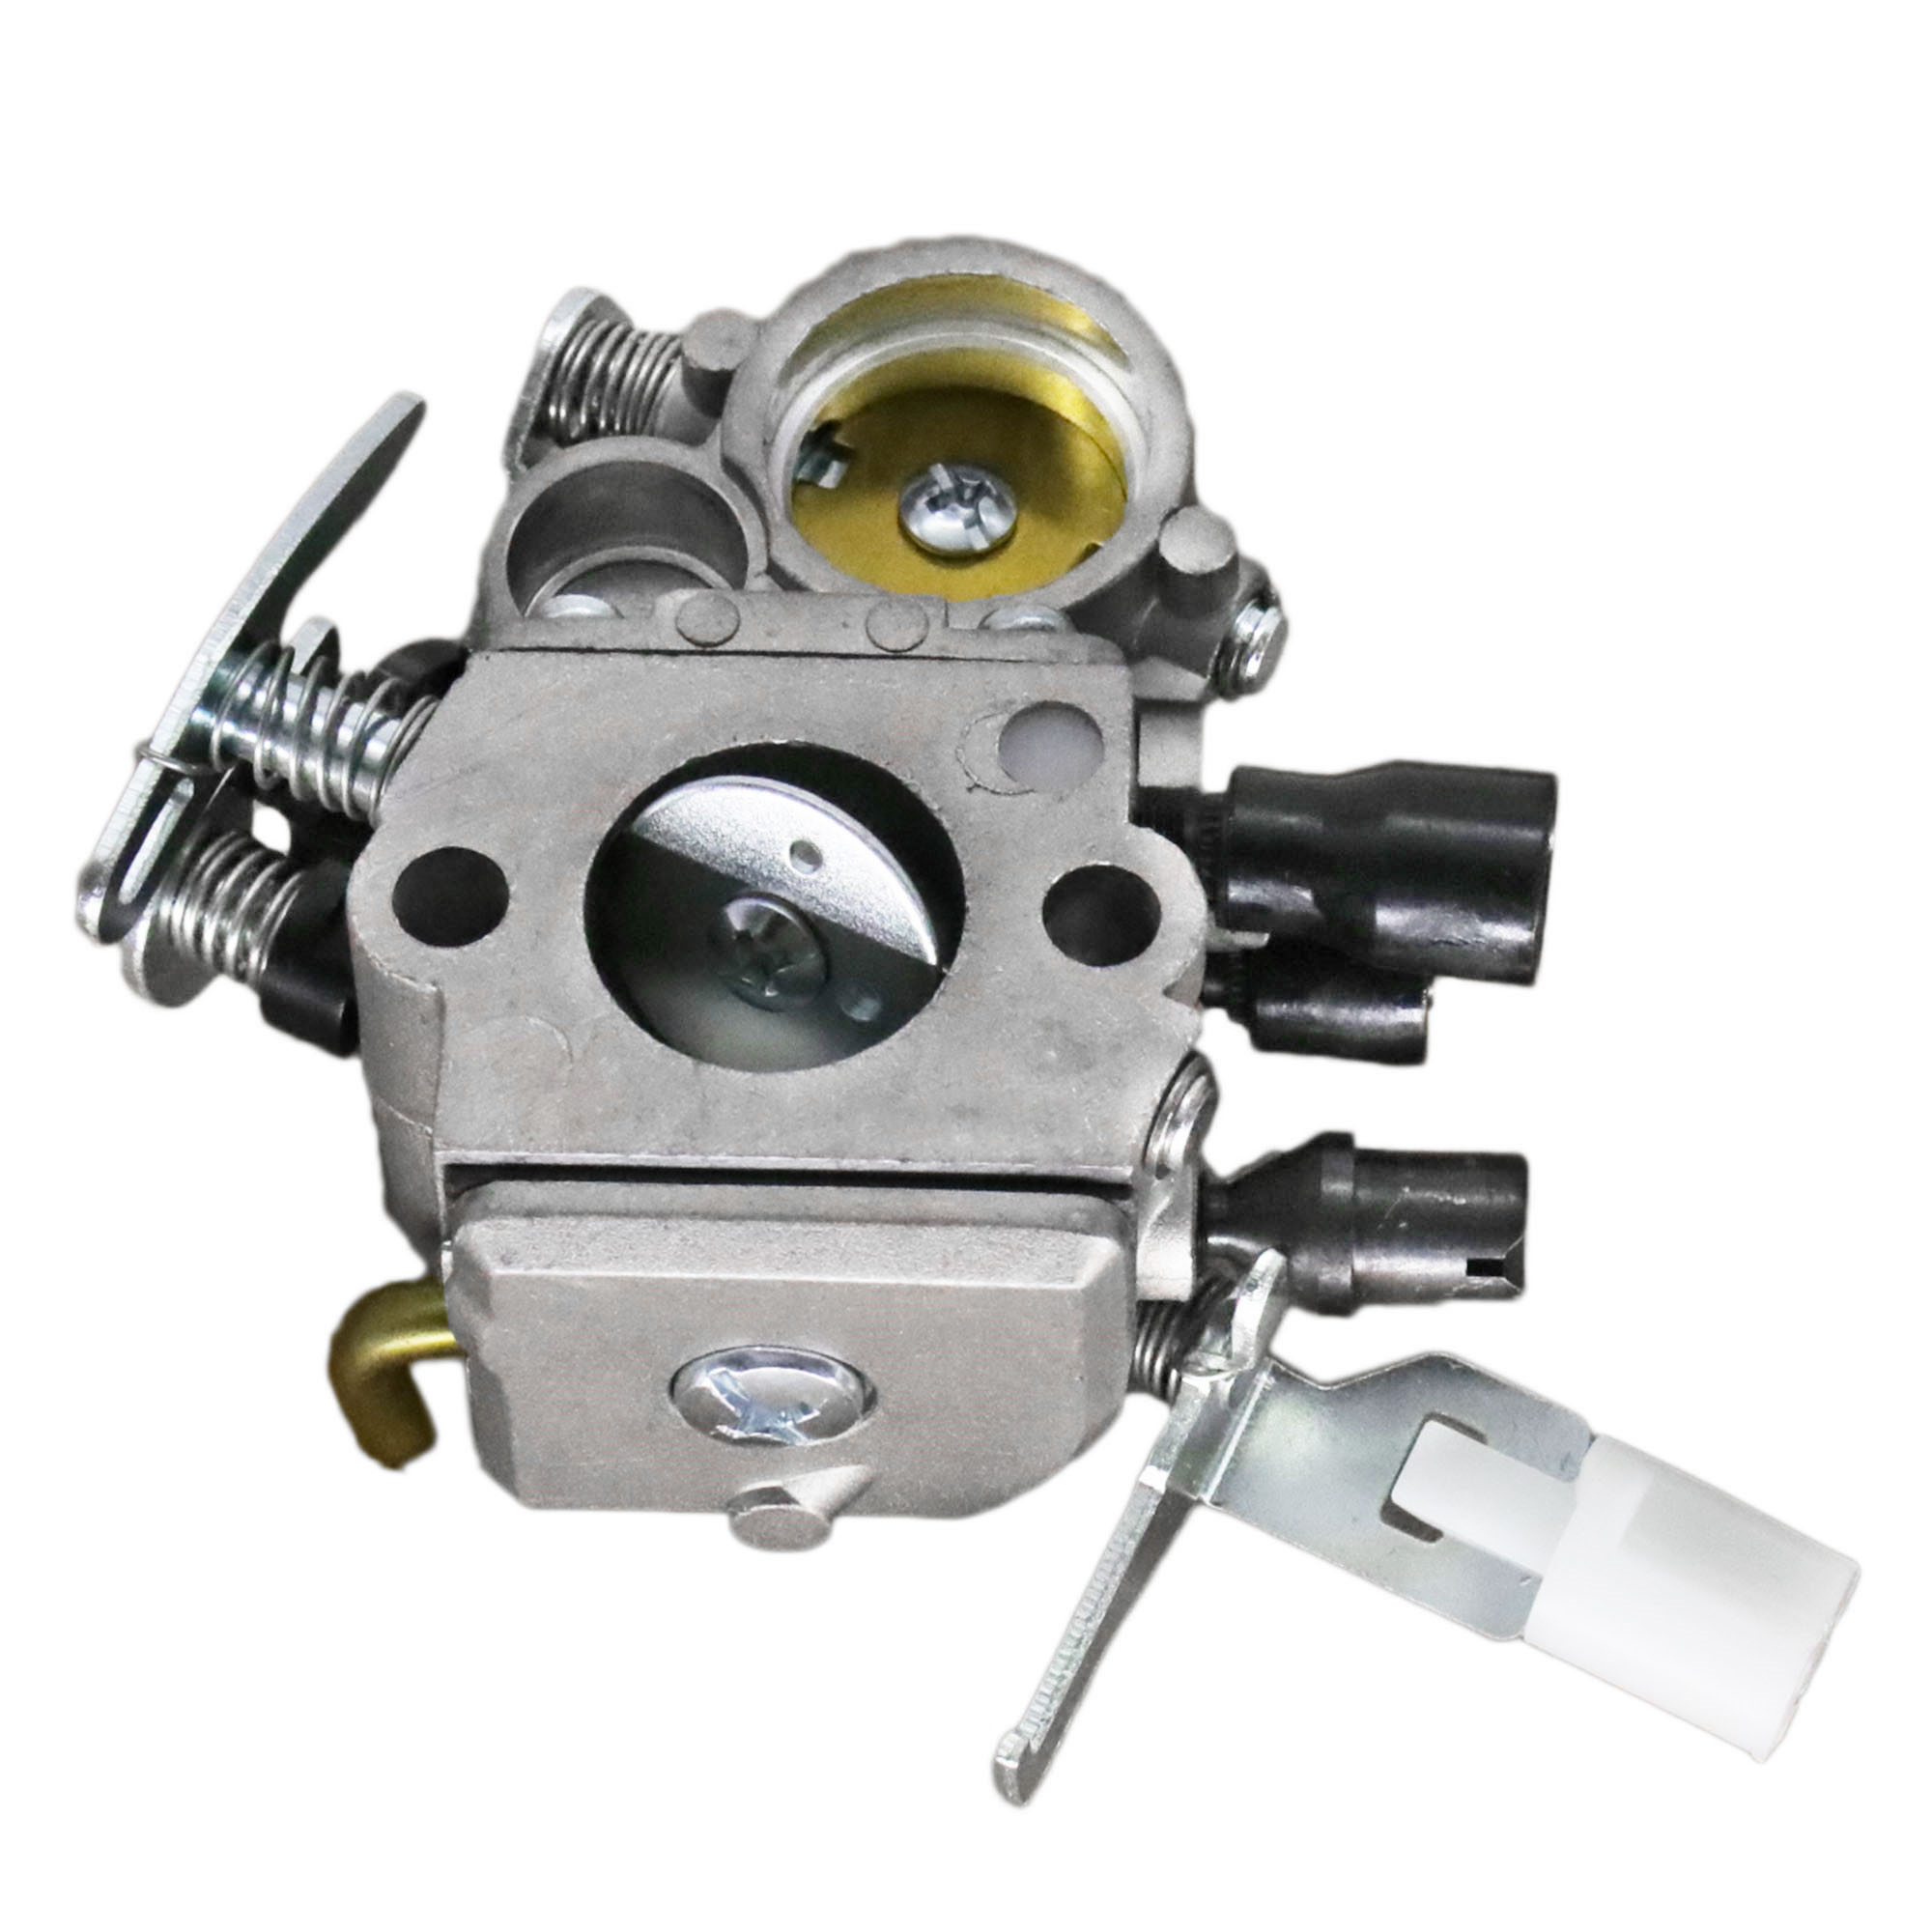 Carburetor Carb for ZAMA C1Q-S269 STIHL MS171 <font><b>MS181</b></font> MS201 MS211 Chainsaw image